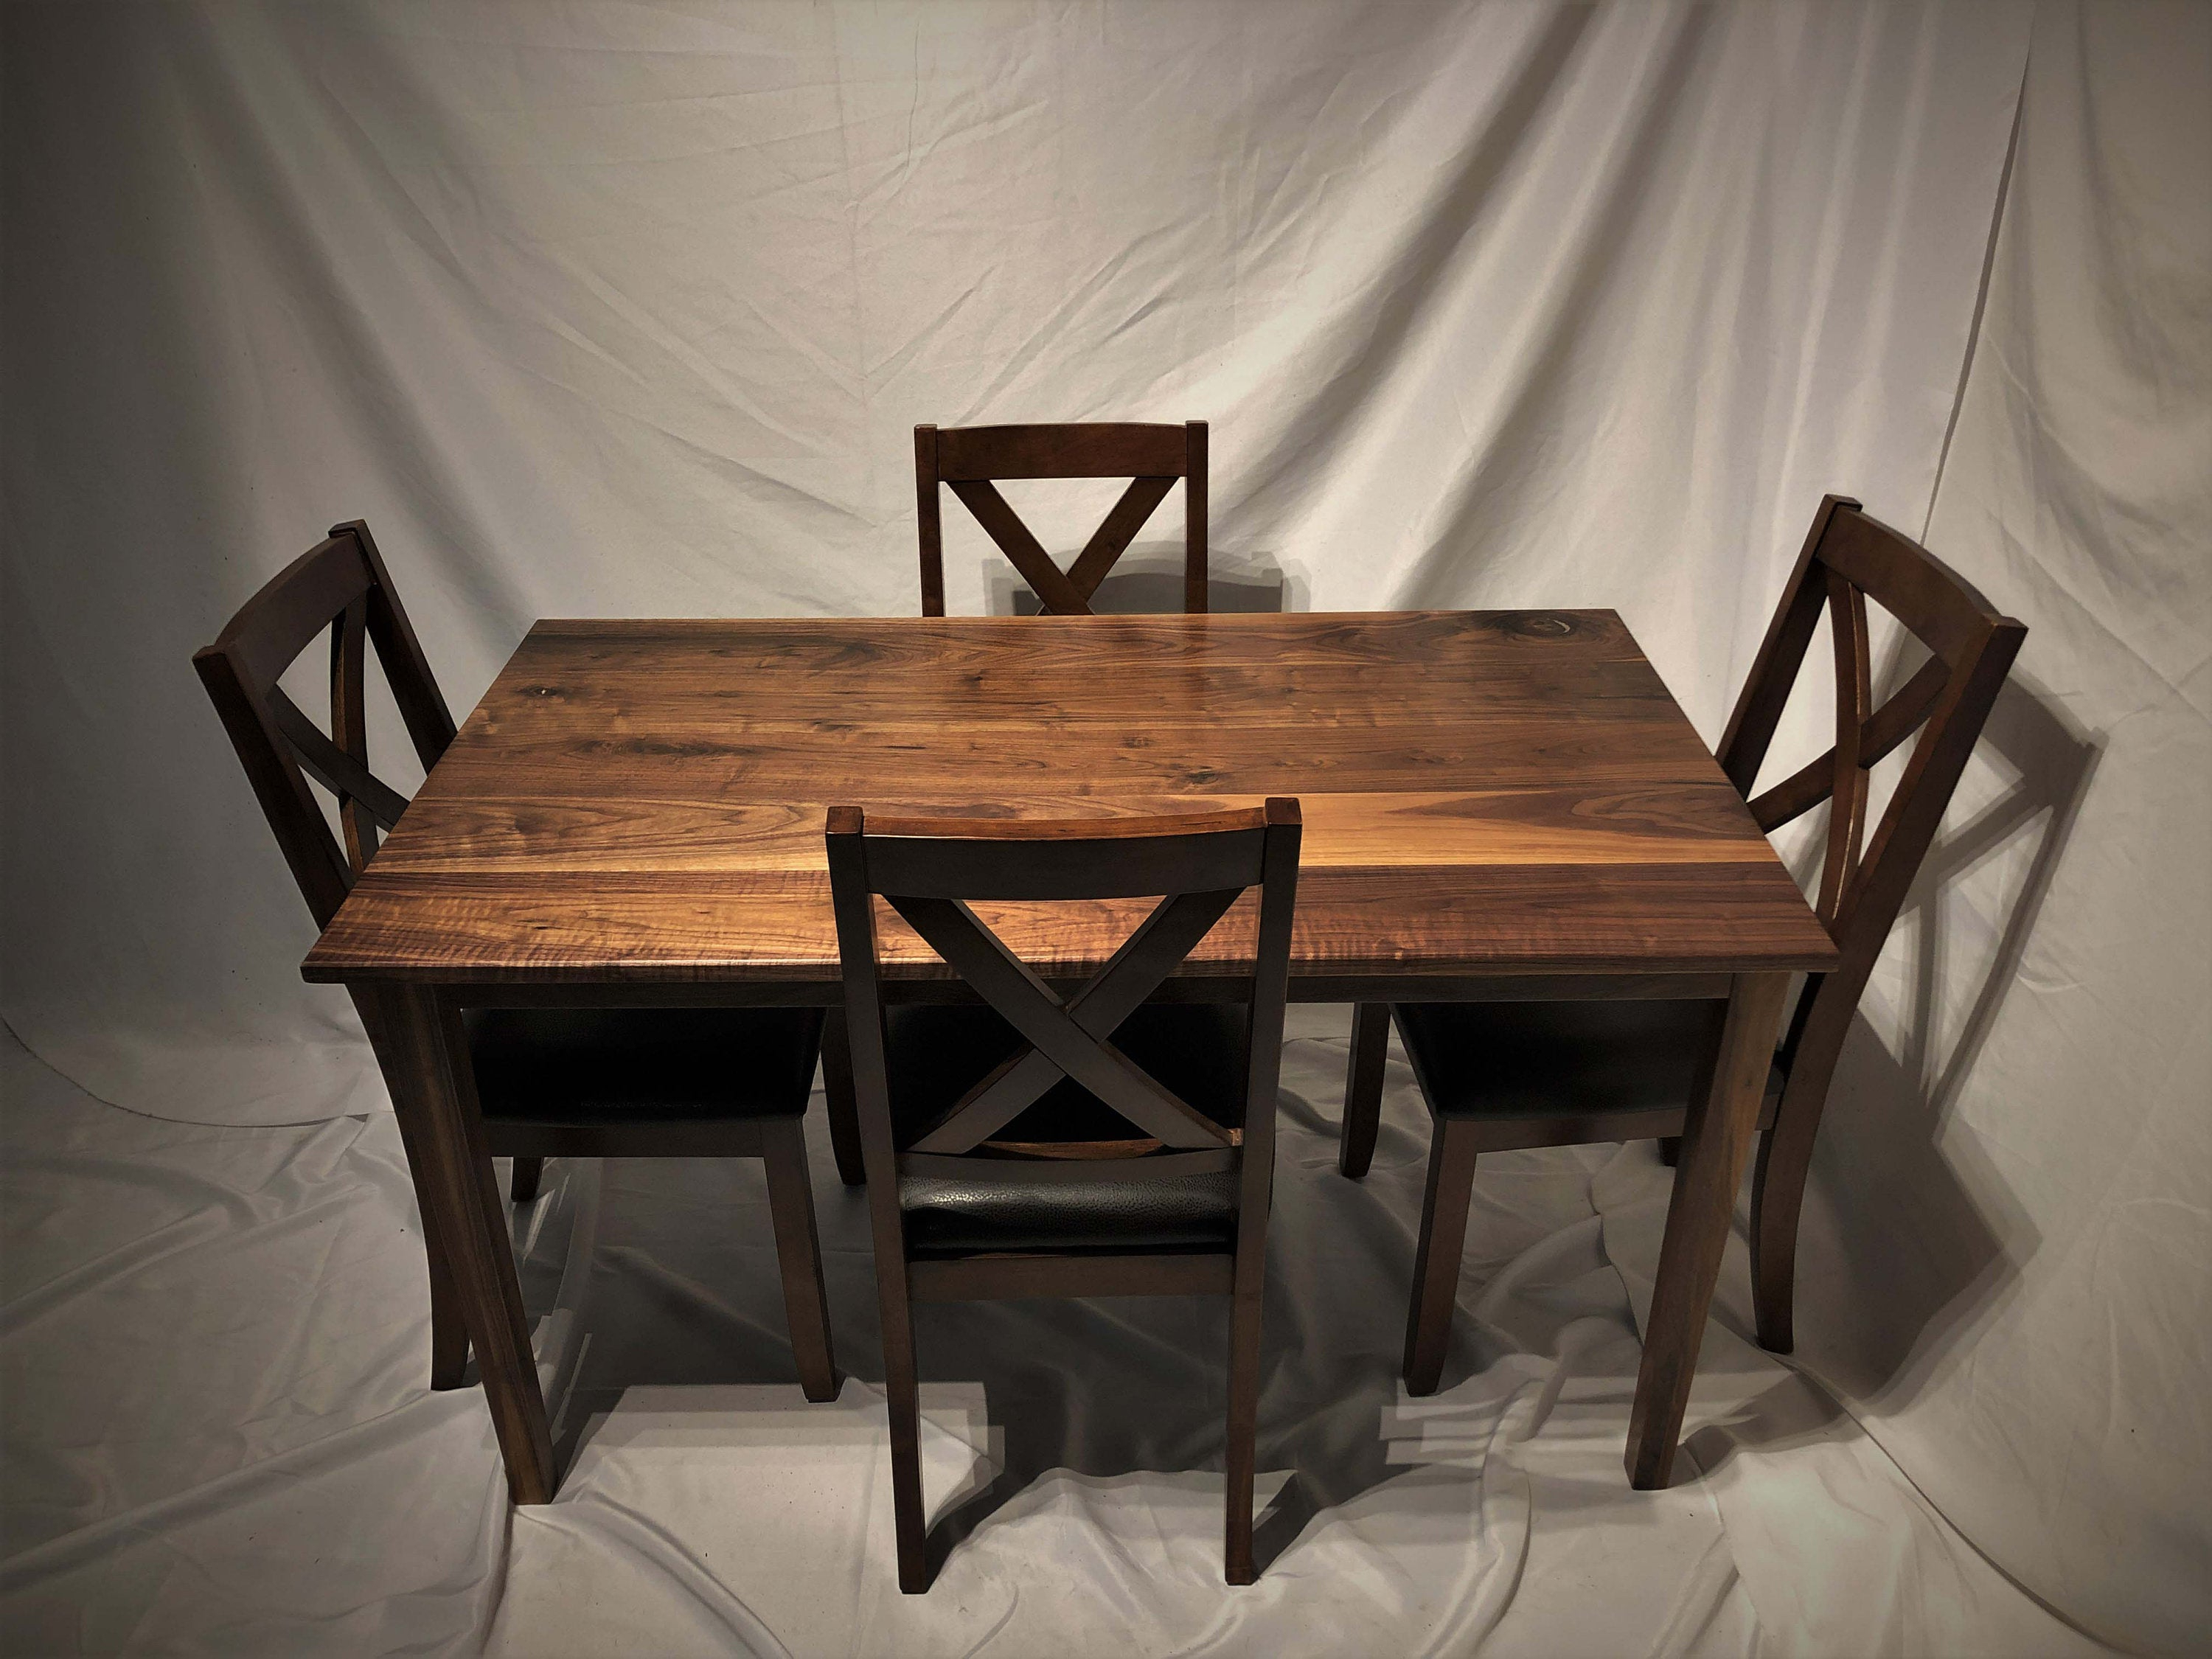 Etsy Throughout Sundberg 5 Piece Solid Wood Dining Sets (View 8 of 25)